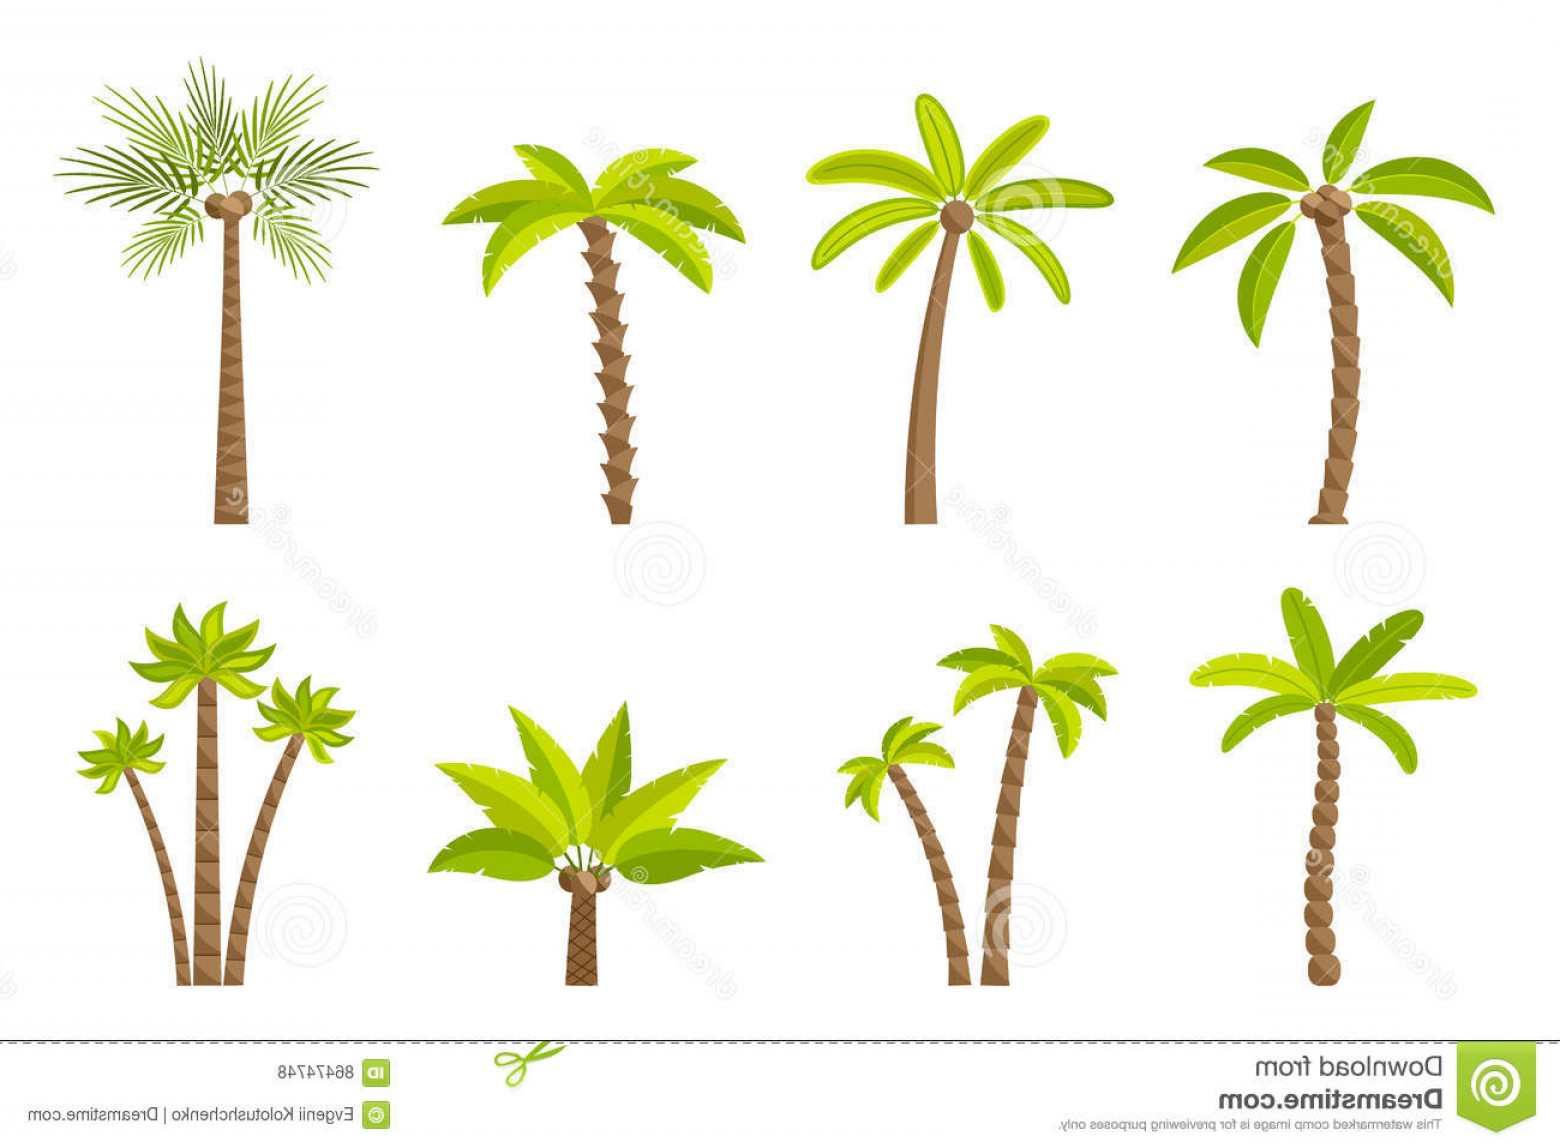 Simple Palm Tree Vector: Stock Illustration Vector Set Simple Palm Trees Flat Cartoon Palms White Background Image